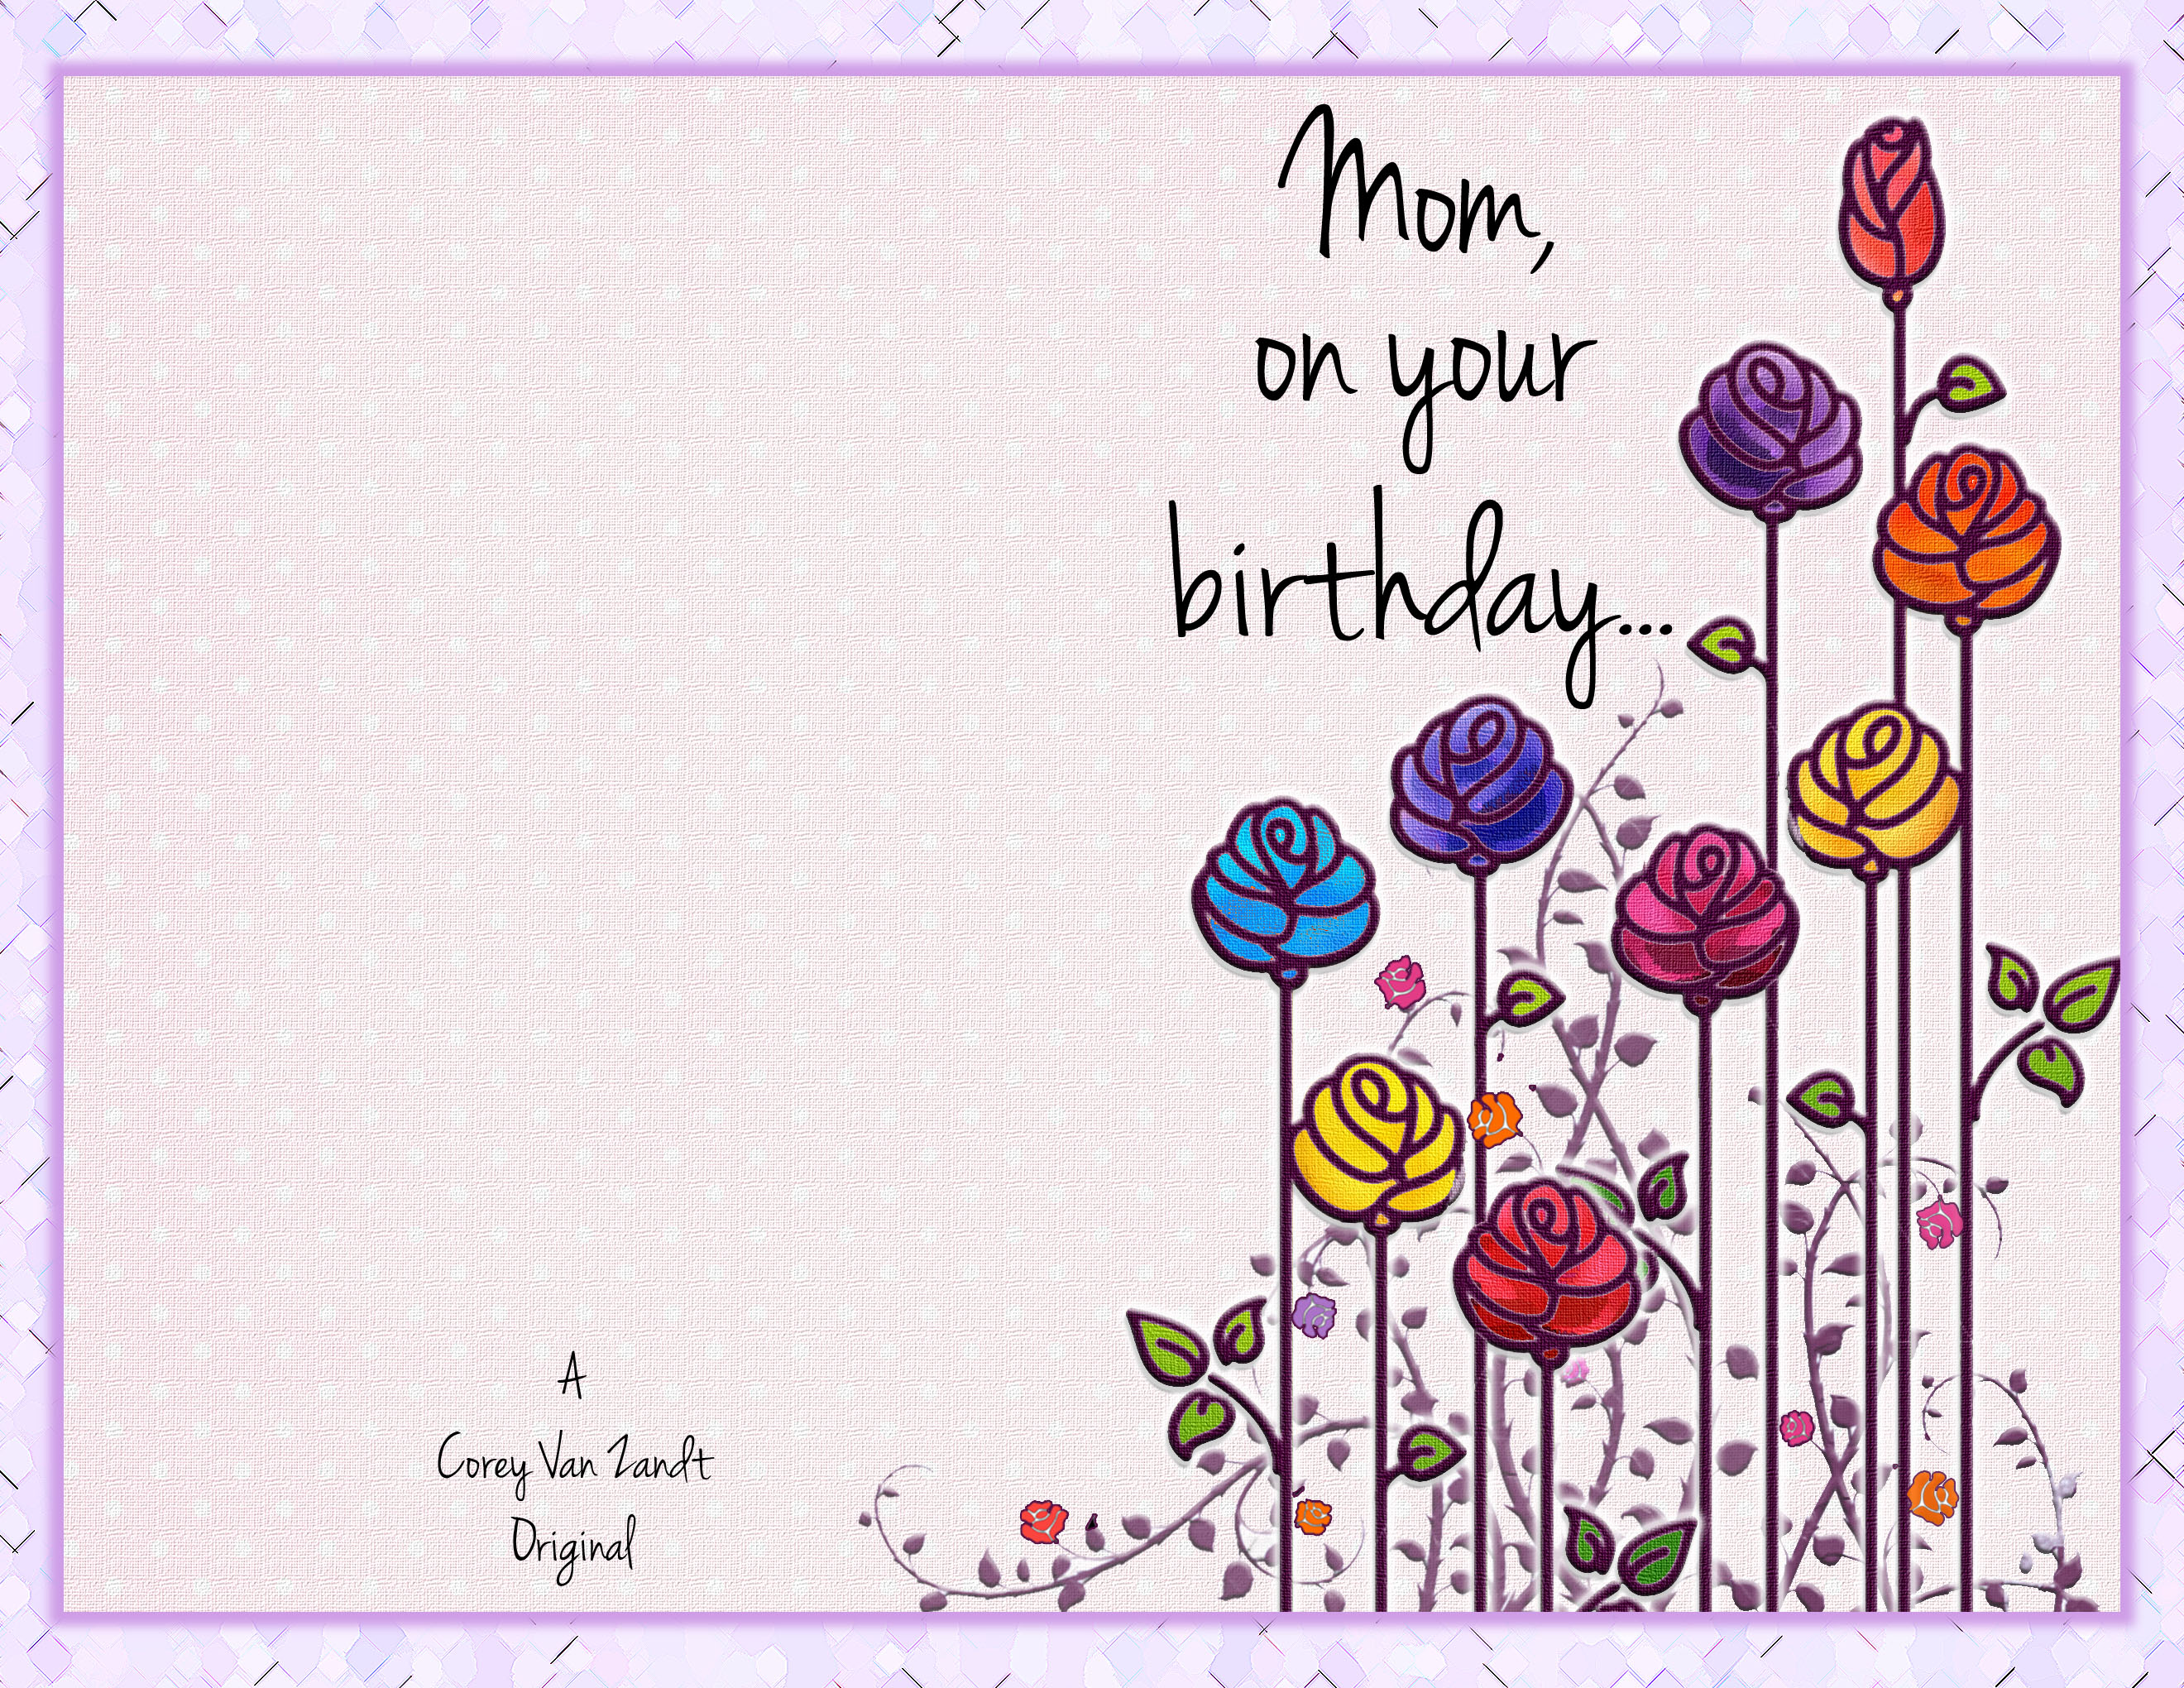 Tremendous Mom Card Front Happy Birthday Card Corey Van Zandt Birthday Card Template Black Office Microsoften Ustemplateshappy Birthday Card Tc010169560px cards Birthday Card Template